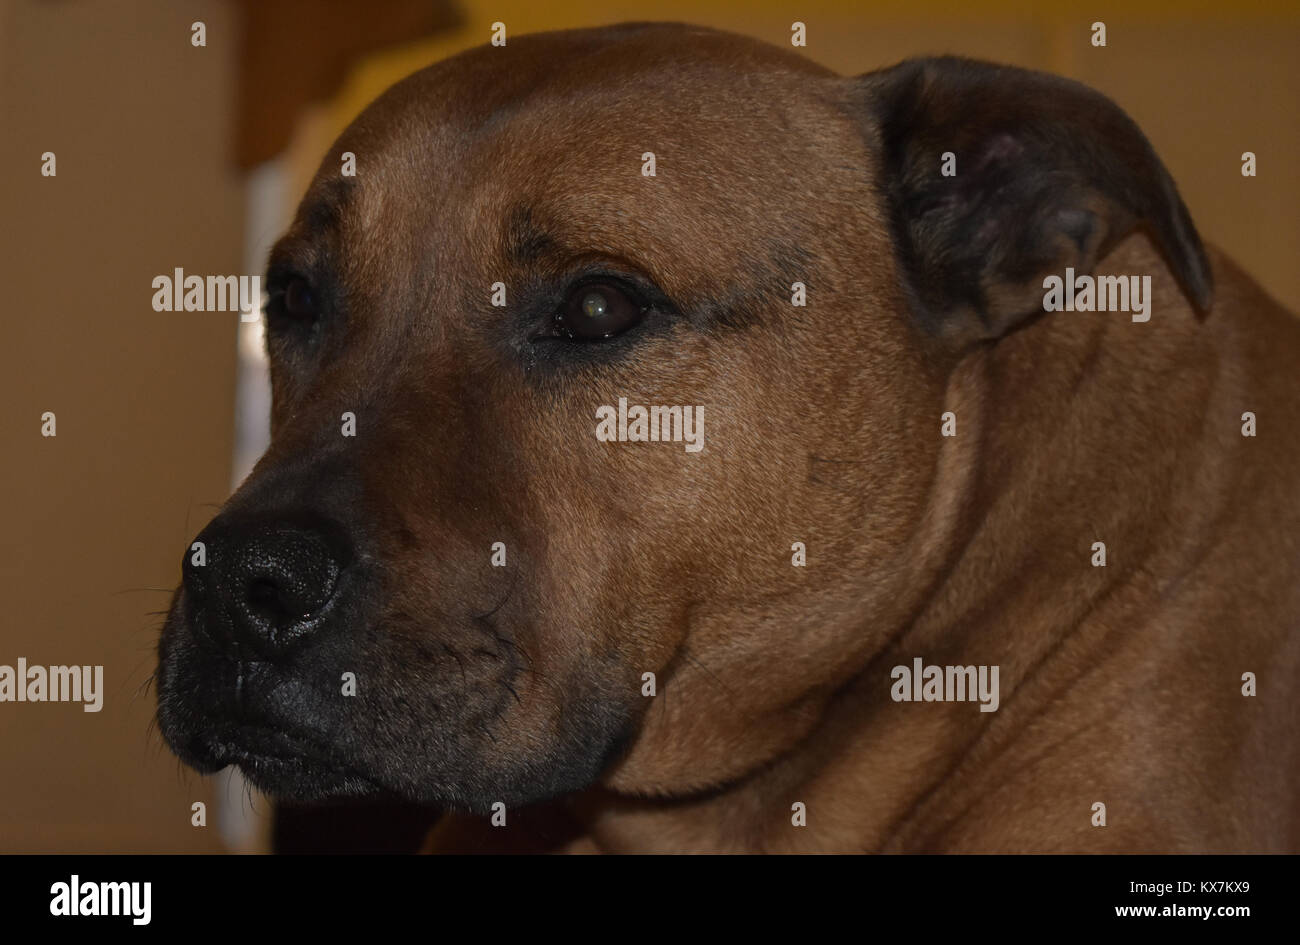 Picture of my dog and how depressed he looks after he wakes up, my dog's name is lucky and atleast he has a - Stock Image